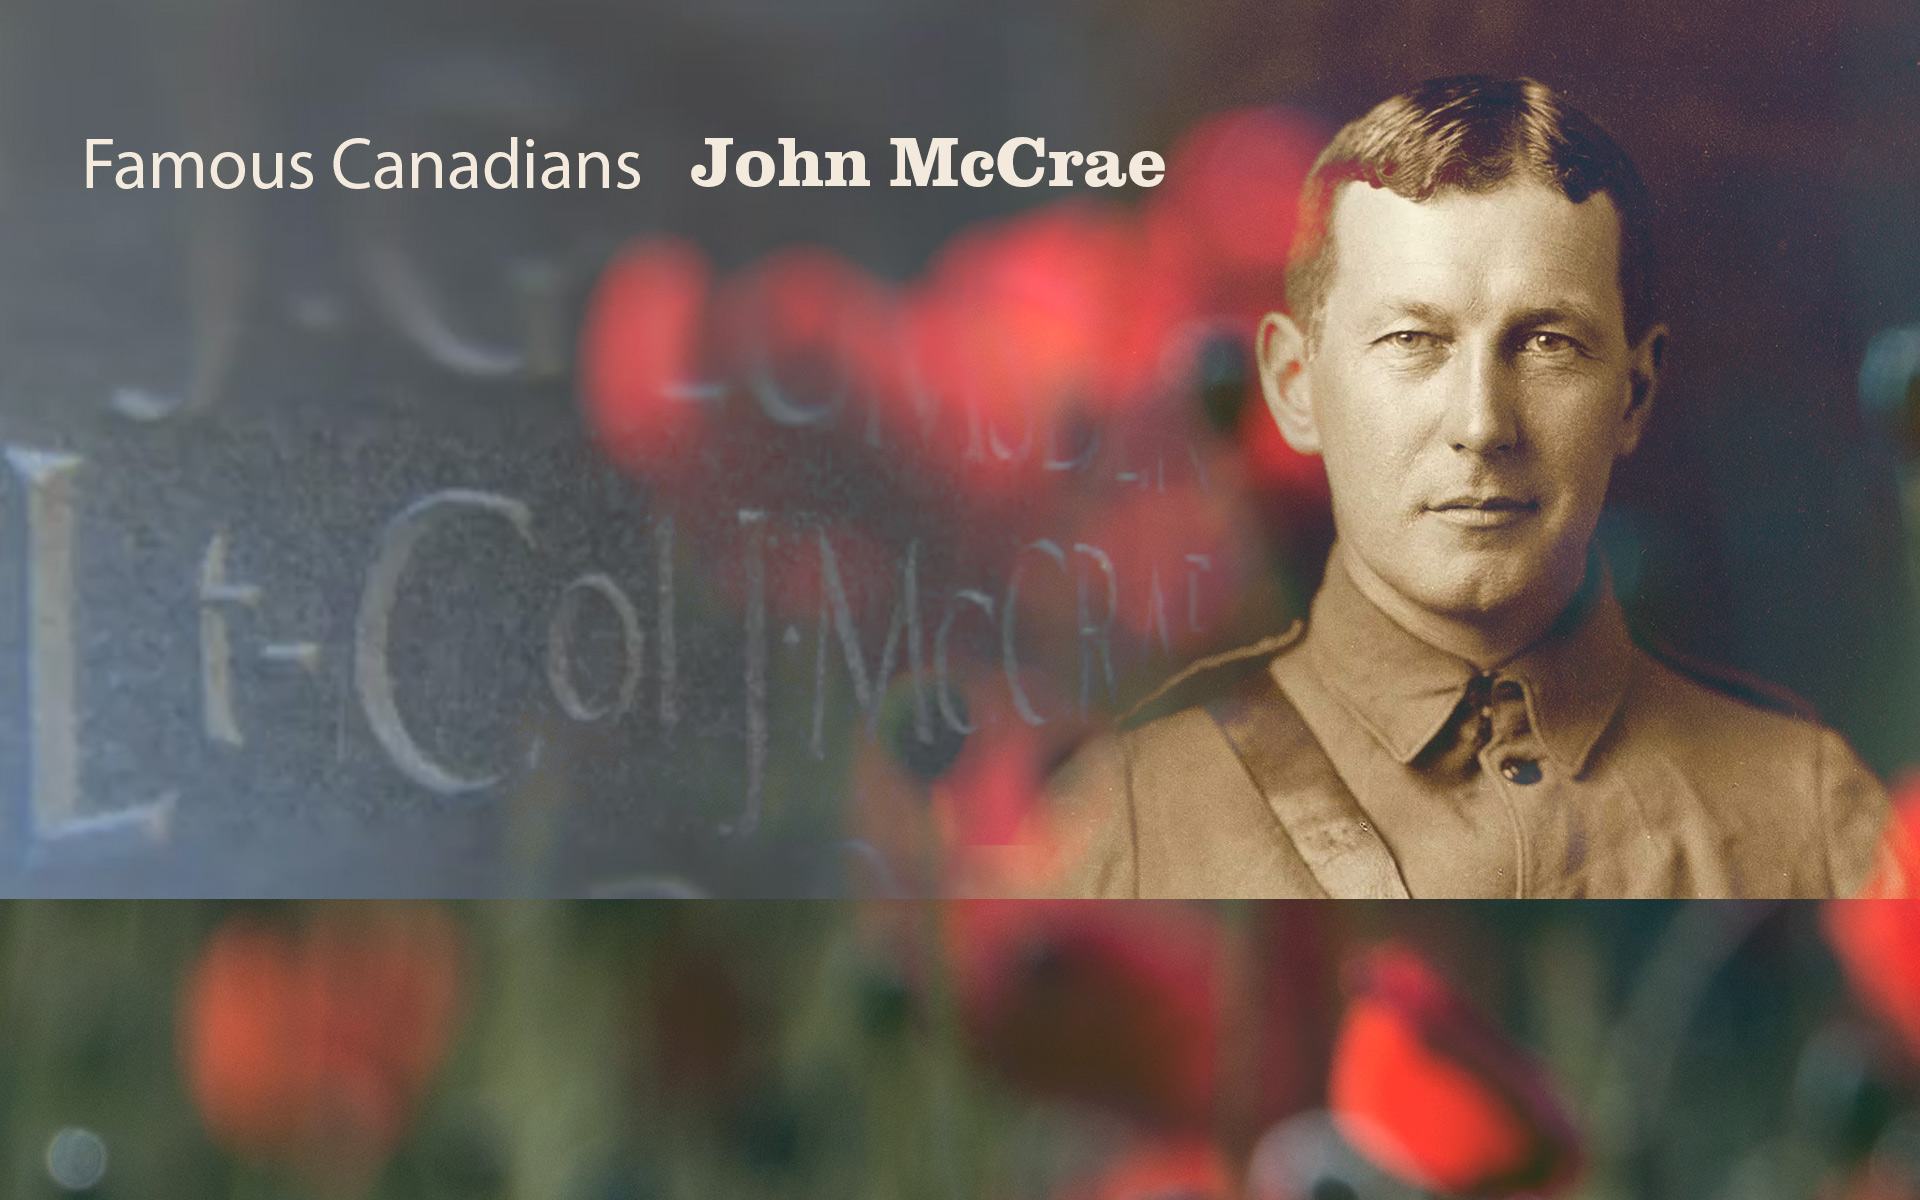 Remembrance Day and John McCrae (In Flanders Fields poem)